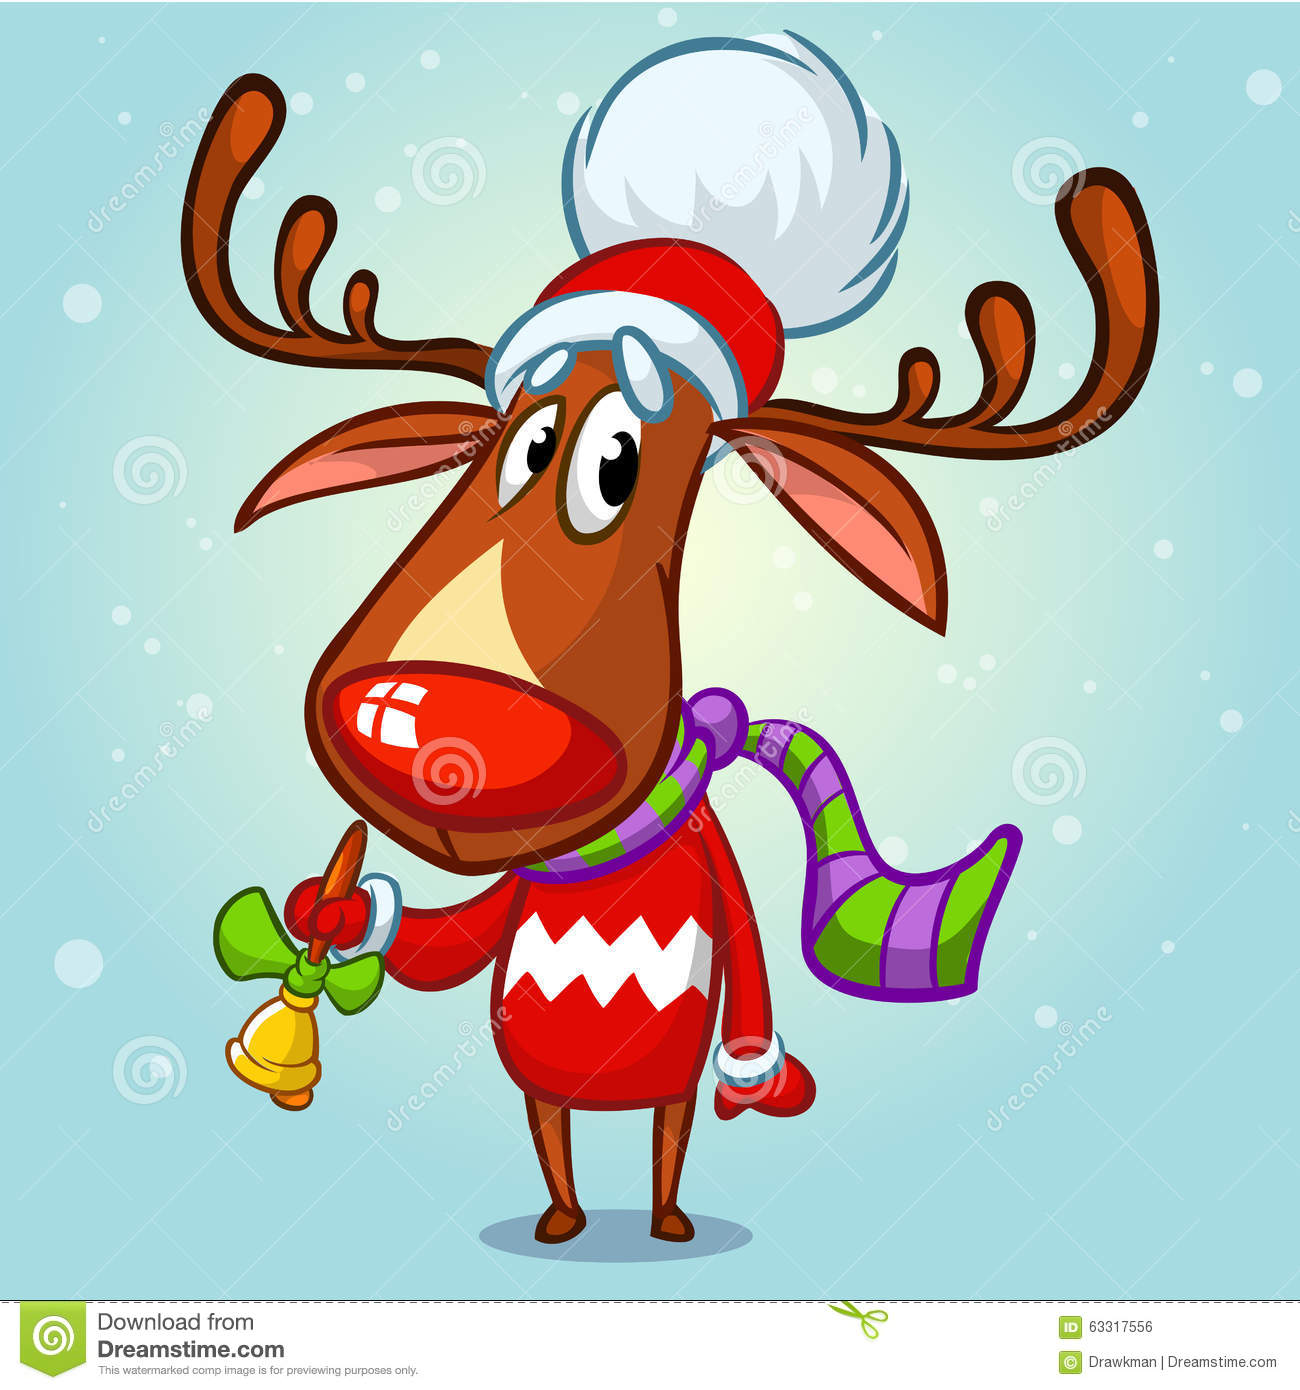 1a469f7806696 Christmas reindeer in Santa hat ringing a bell. Vector illustration on  snowy background